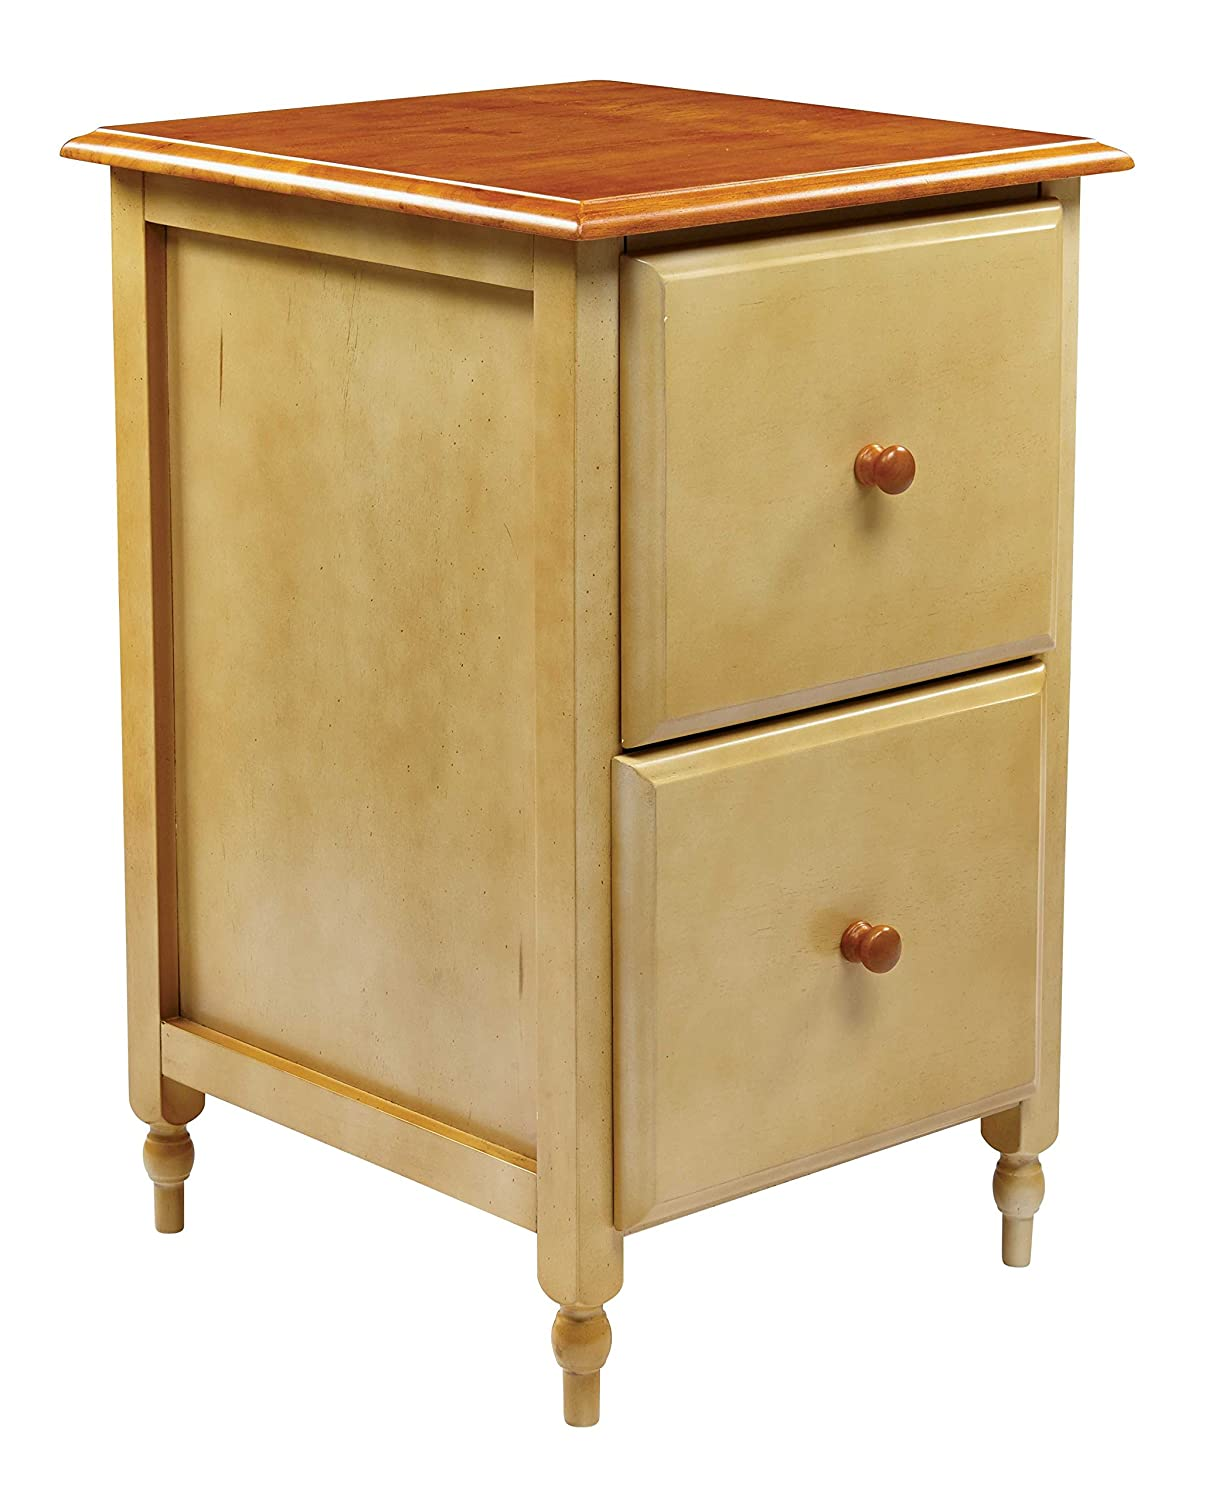 Amazon.com: OSP Designs Country Cottage File Cabinet: Kitchen & Dining